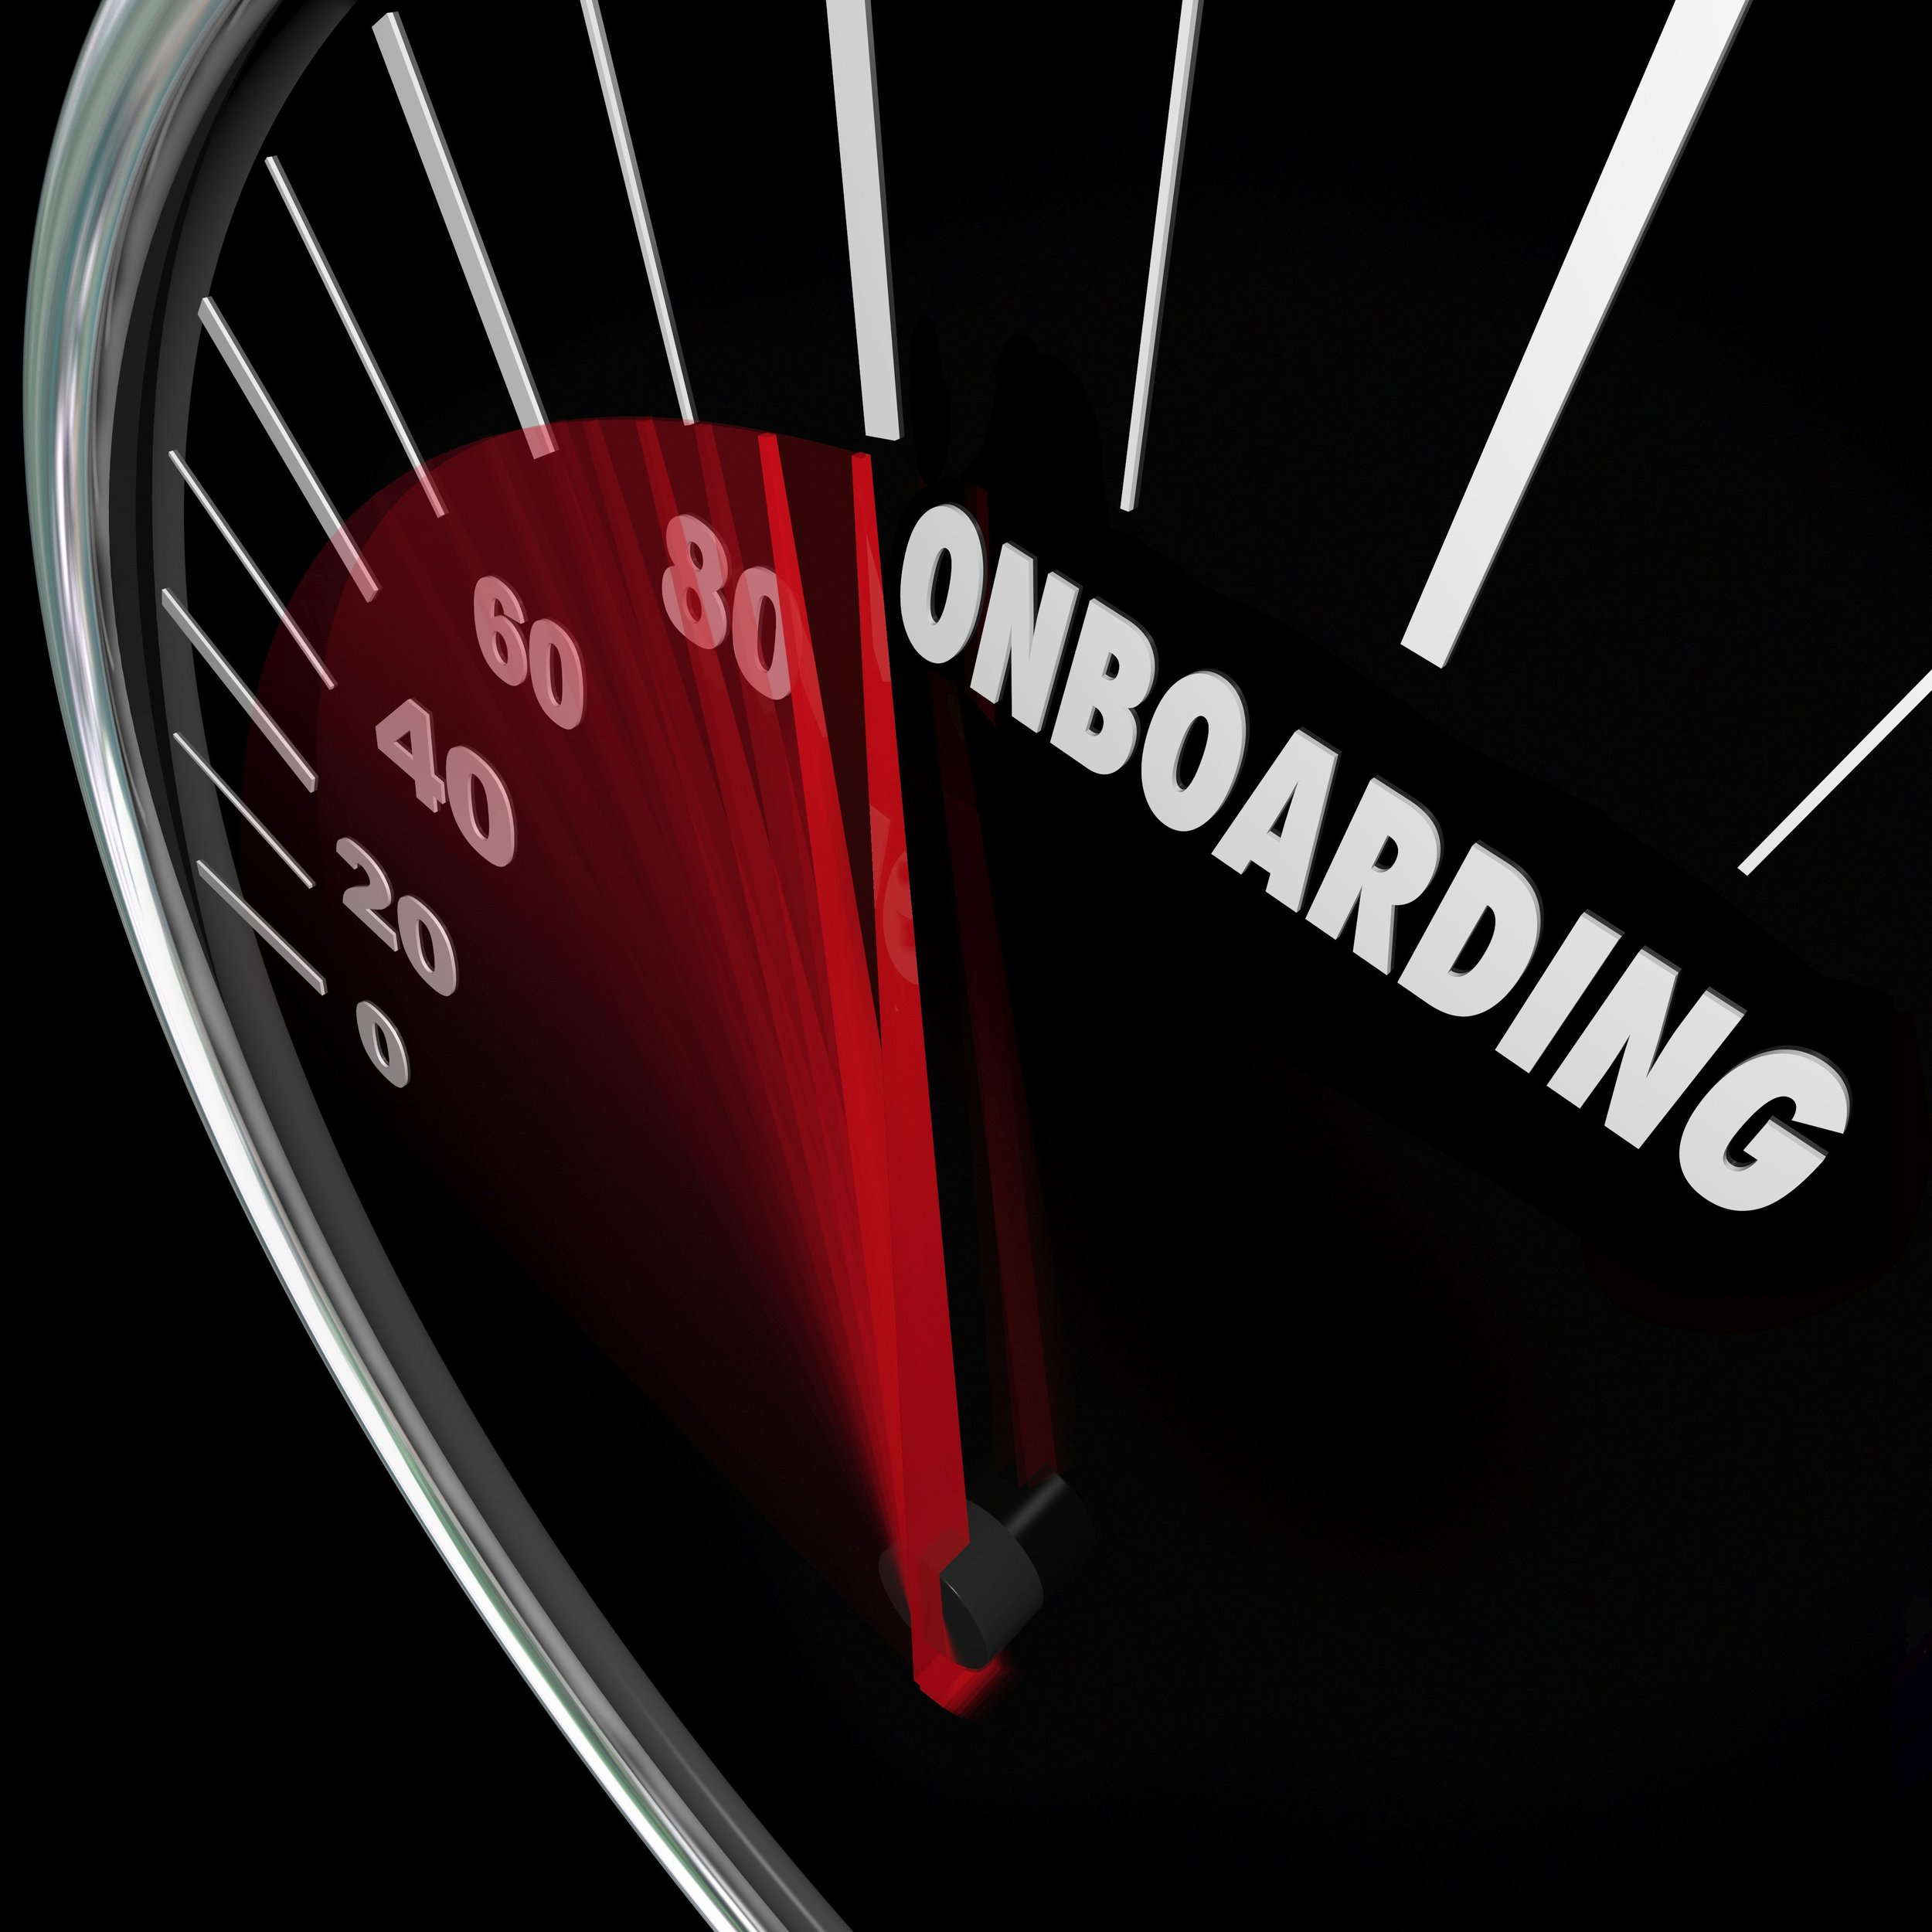 onboarding - Thrive's partner in onboarding has developed a methodology that reduces a new leader's time to value from 6.2 months down to 2.5 months, capturing critical time value in the world of private equity.LEARN MORE ➝